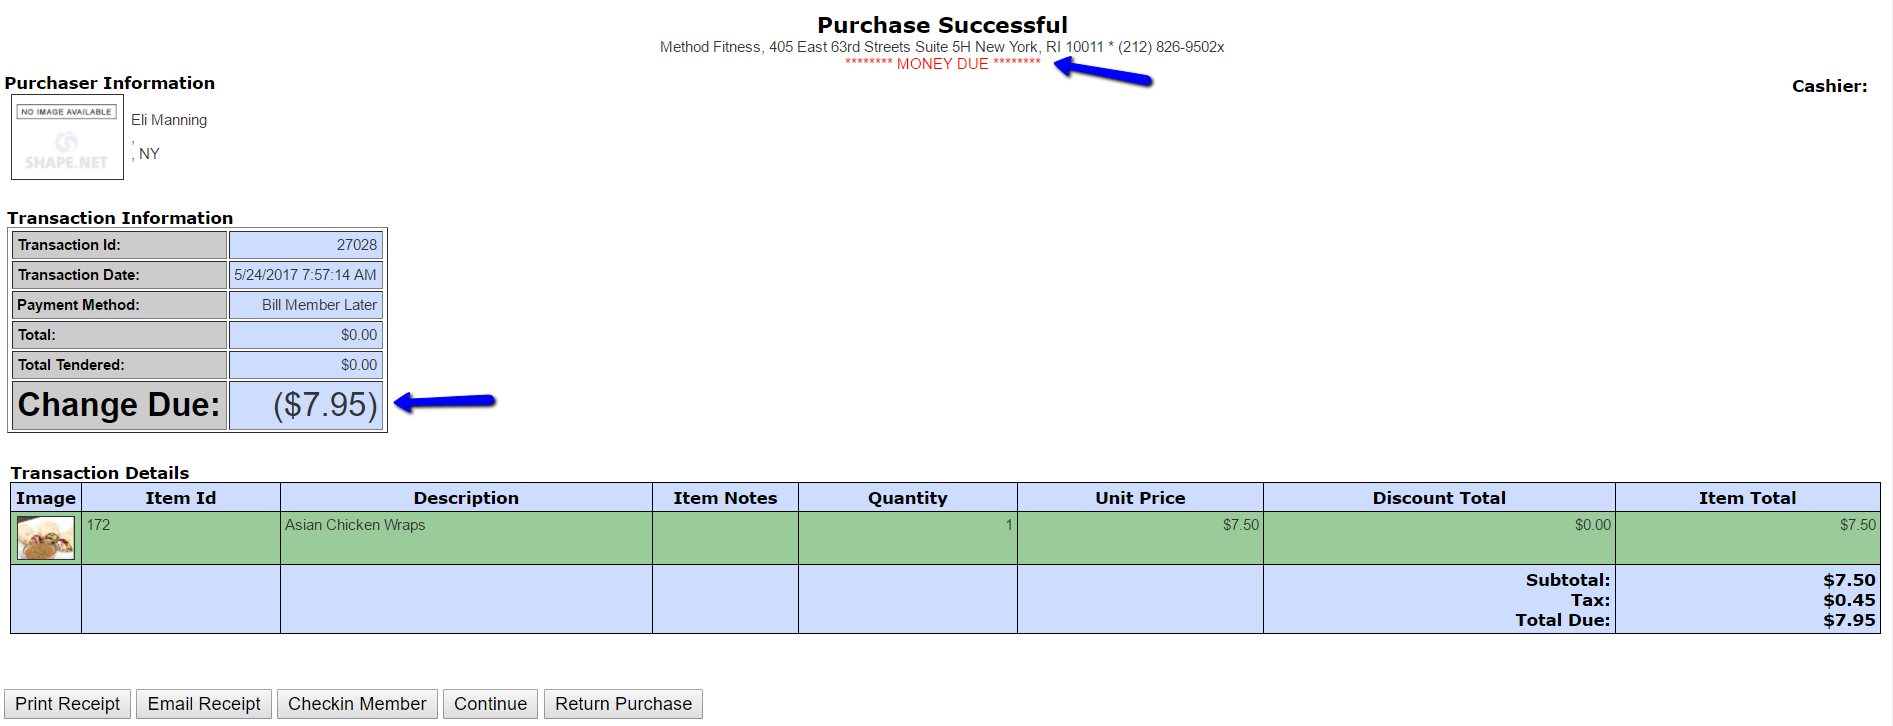 purchase_successful.png